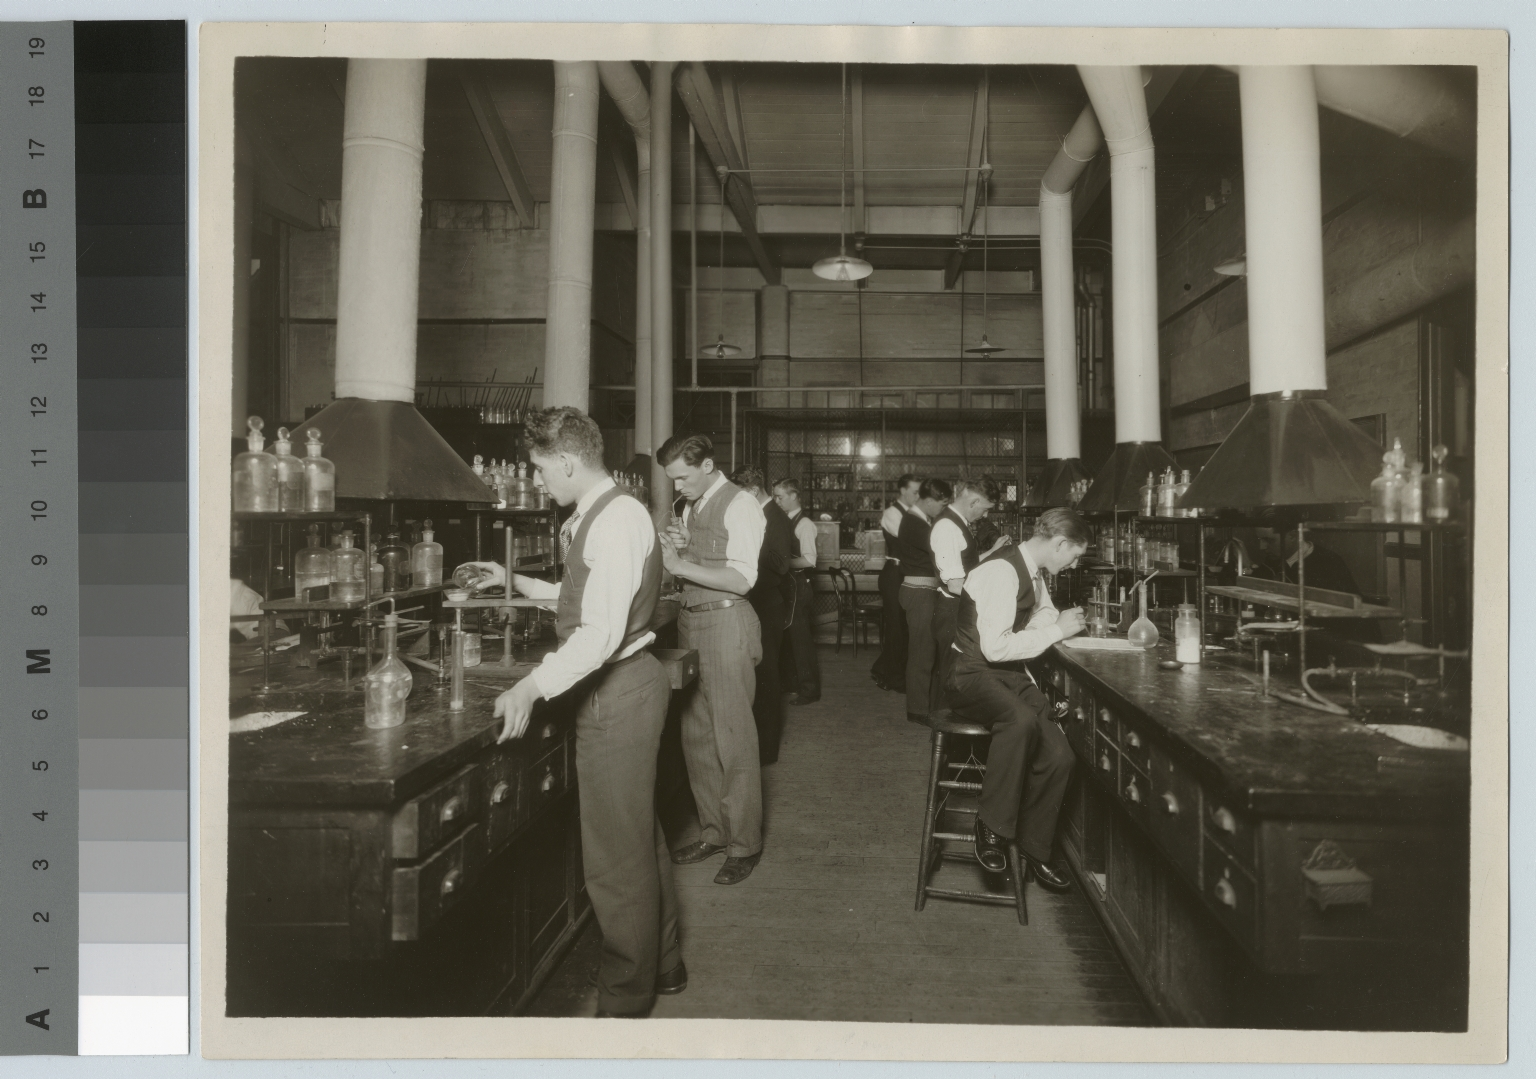 Academics, chemistry, Rochester Athenaeum and Mechanics Institute chemistry laboratory with male students work on experiments, [1920-1930]